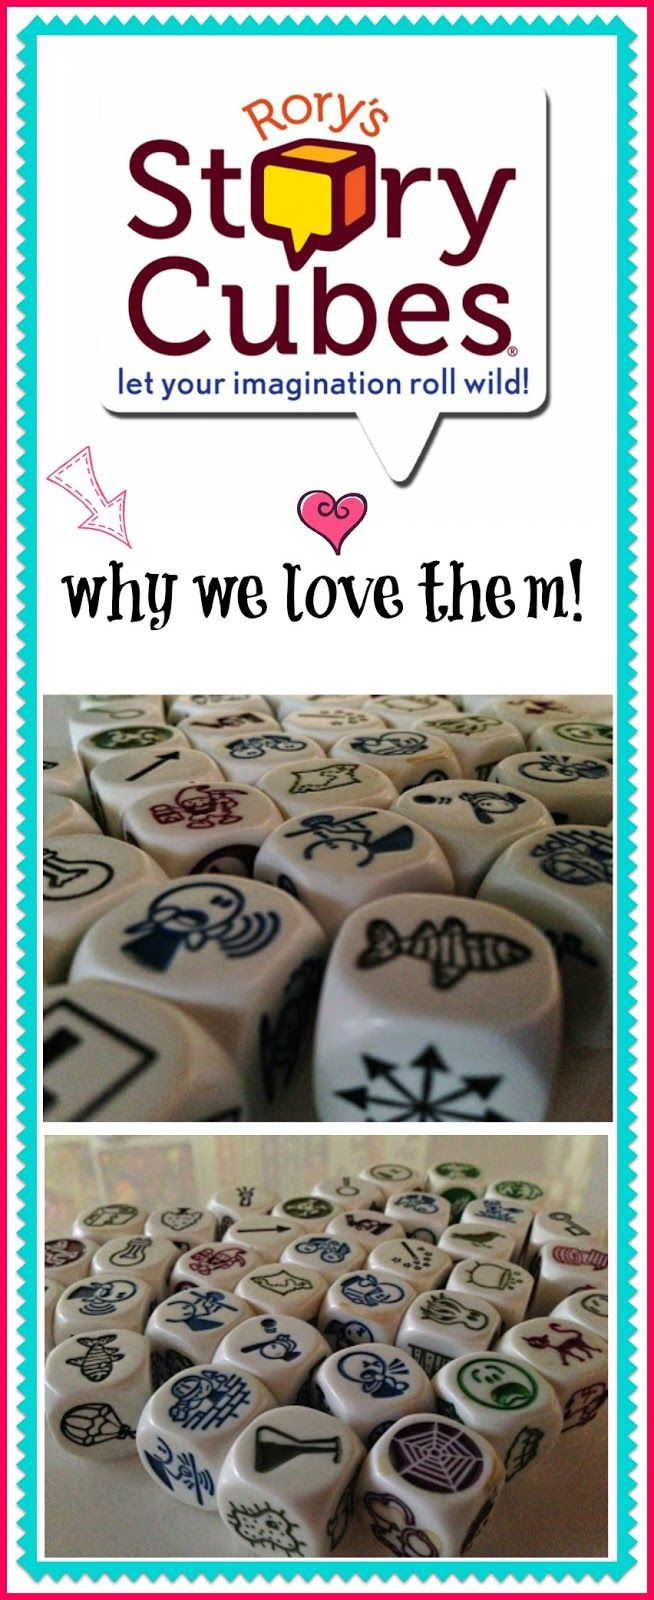 Rory Story Cubes and why we love them | Epic Childhood Blog ...